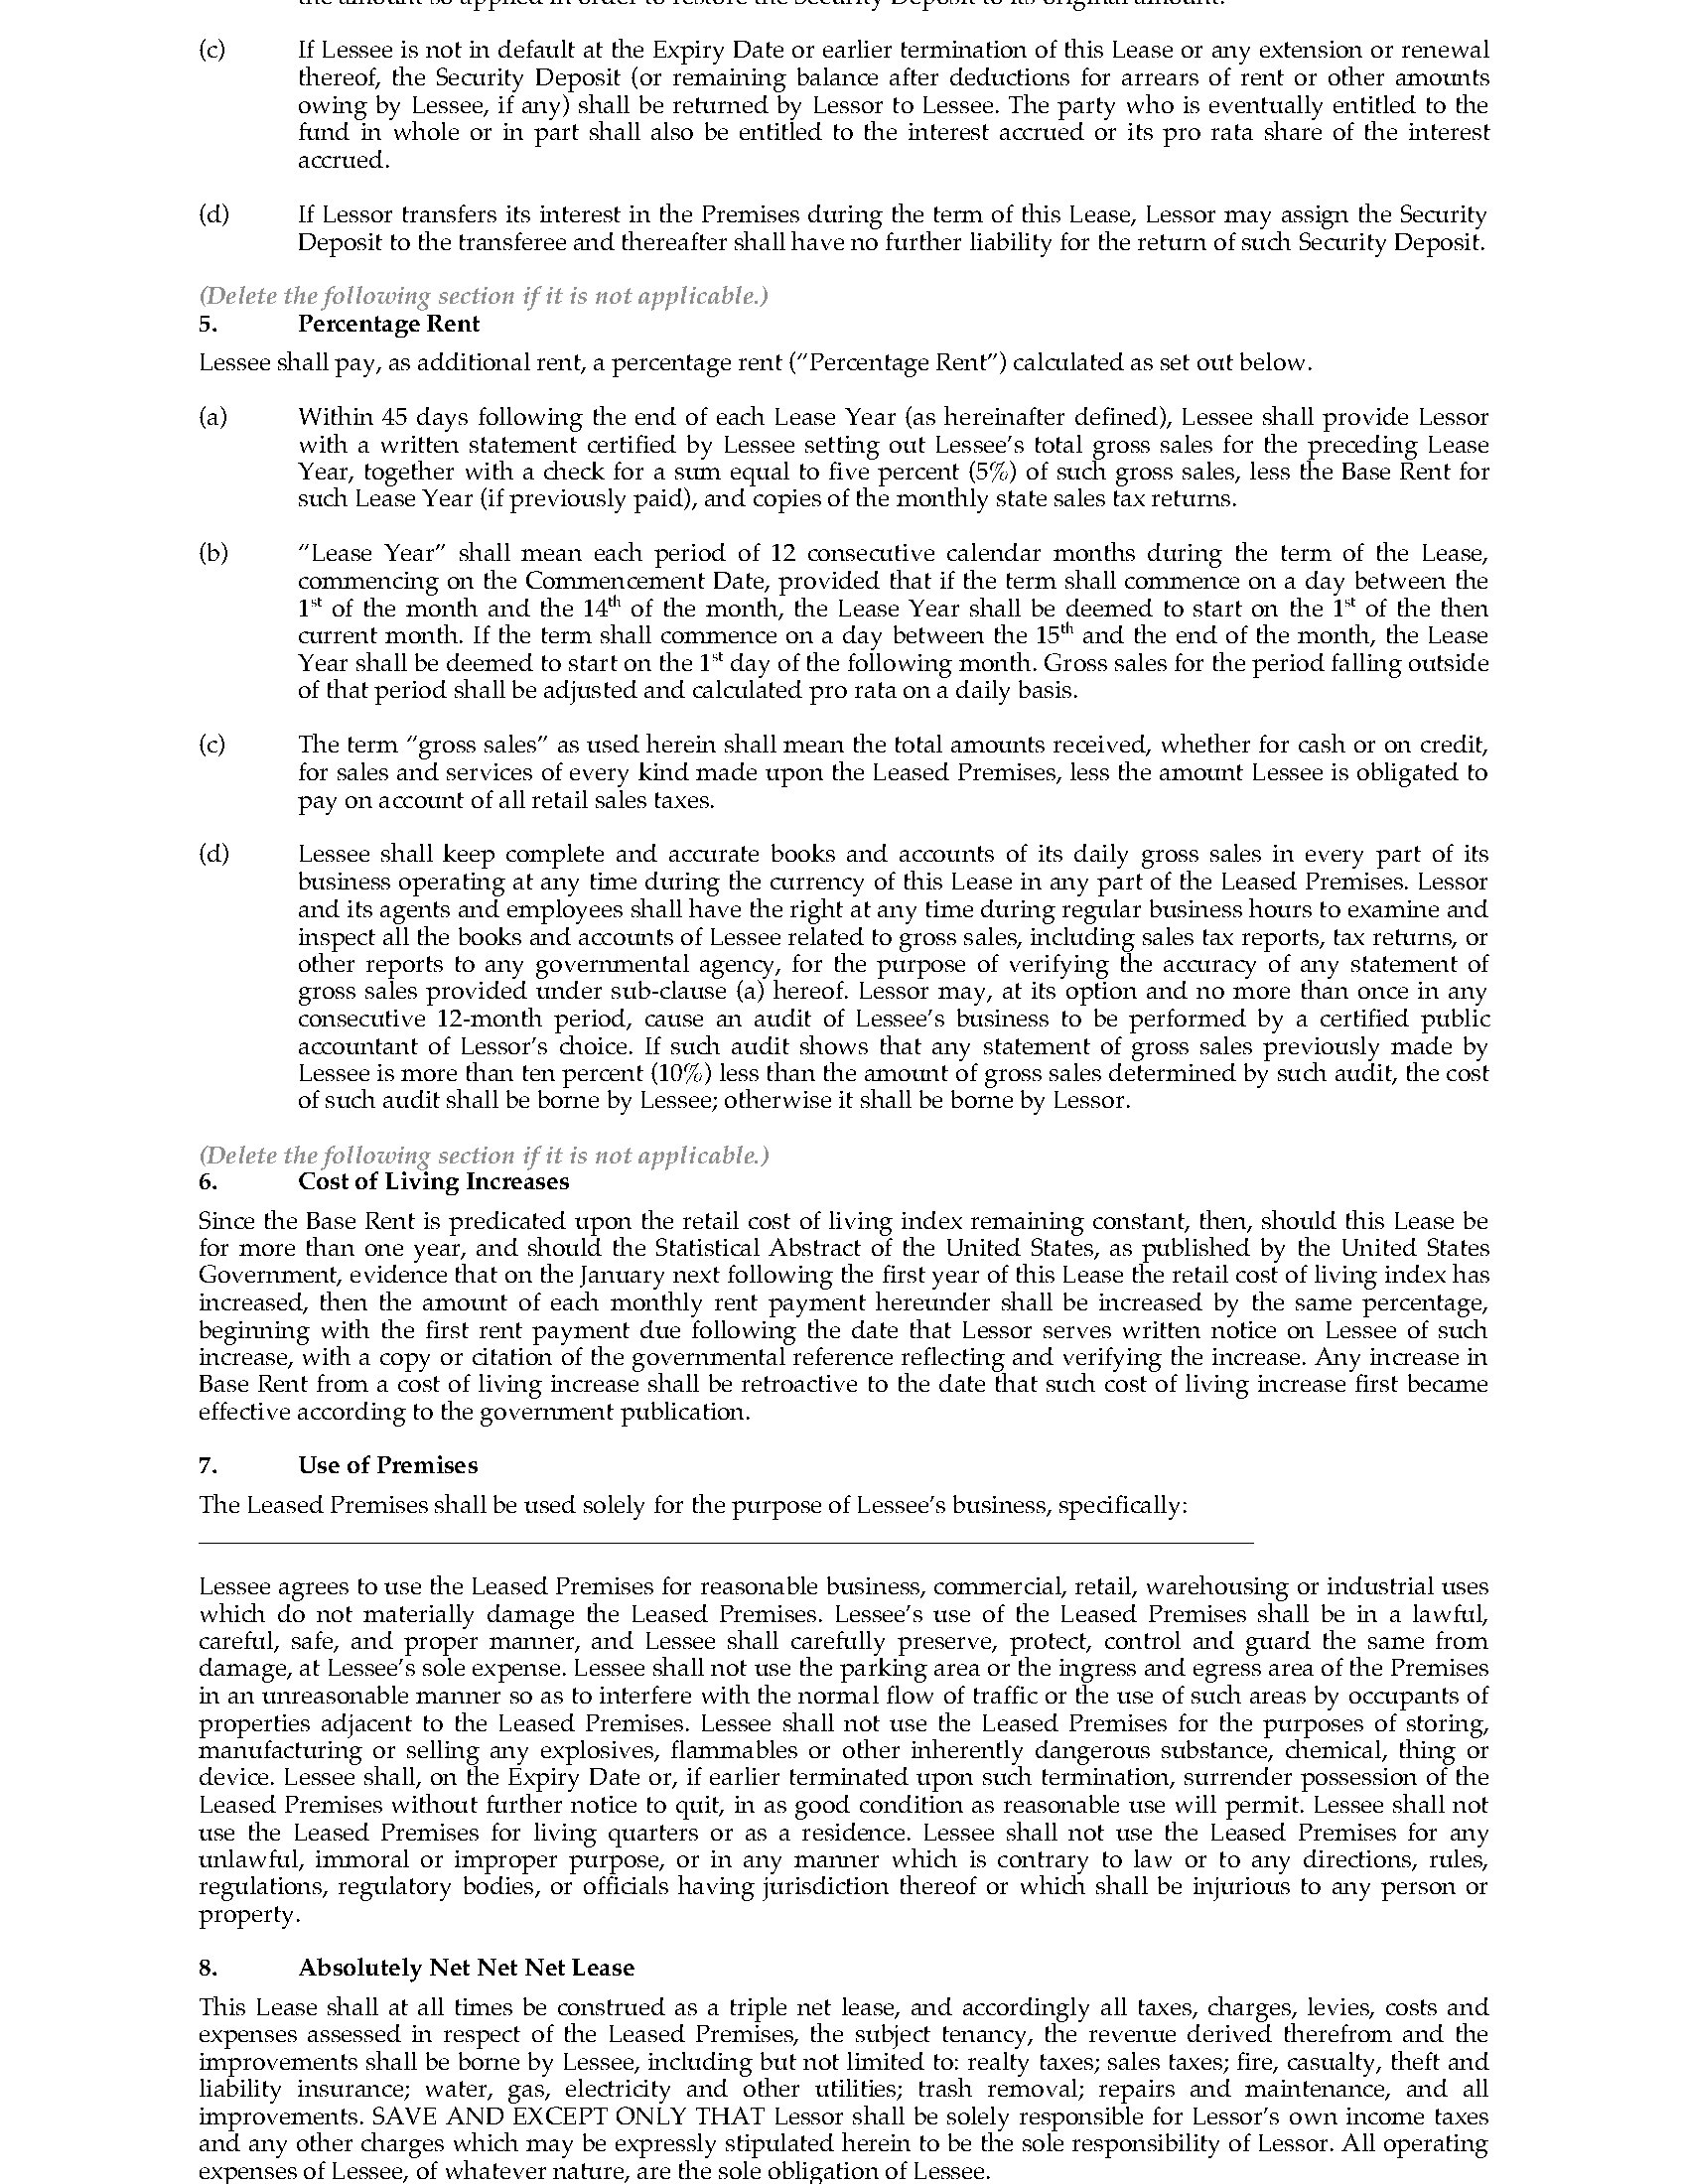 New Hampshire Commercial Triple Net Lease Agreement – Commercial Construction Contract Template